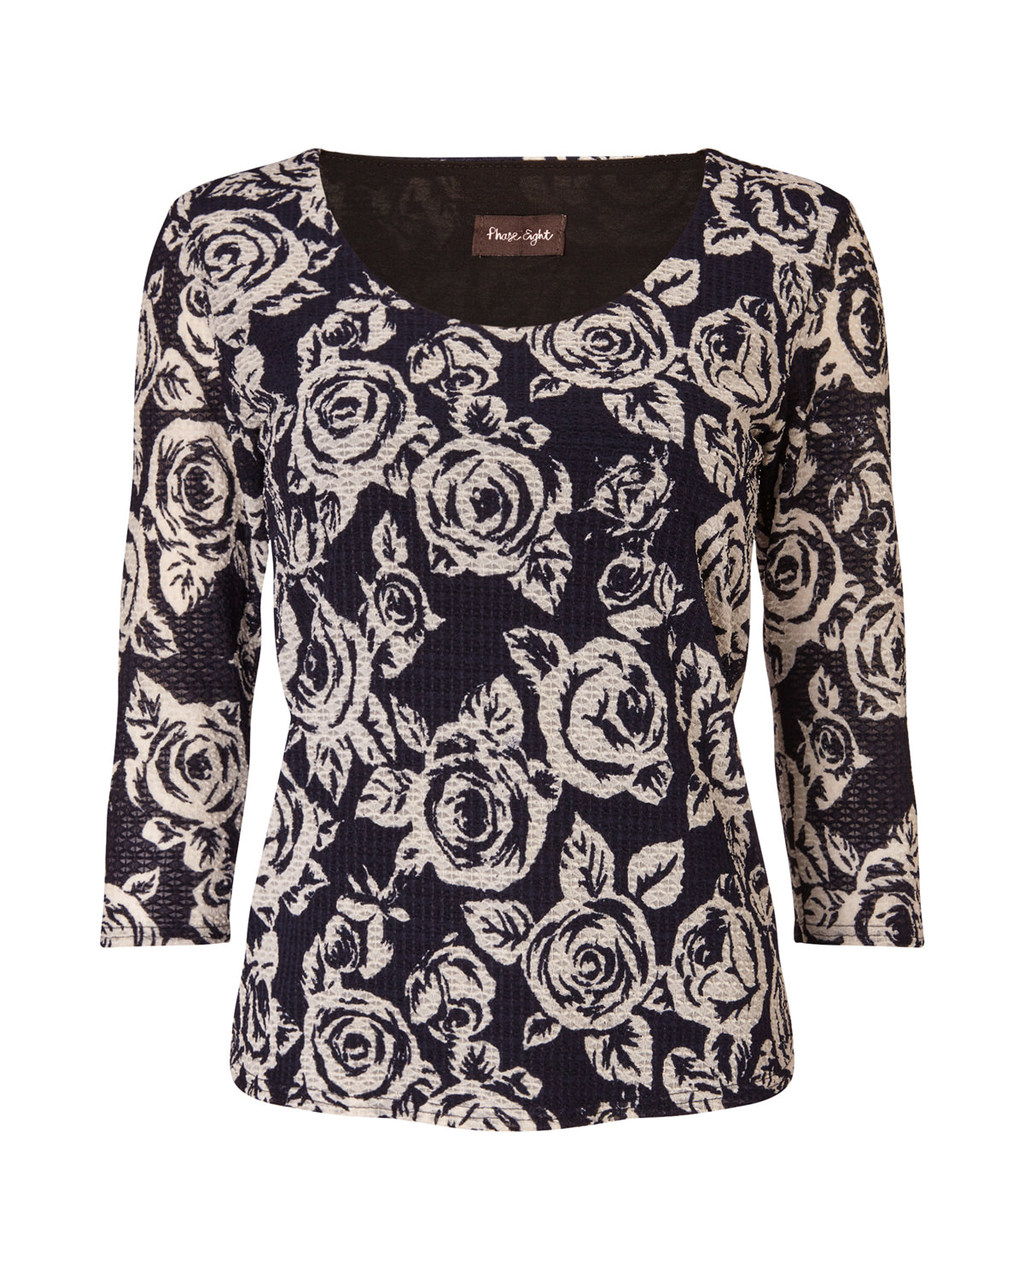 Rose Lace Top - secondary colour: blush; predominant colour: black; occasions: casual, creative work; length: standard; style: top; neckline: scoop; fibres: polyester/polyamide - 100%; fit: body skimming; sleeve length: 3/4 length; sleeve style: standard; texture group: lace; pattern type: fabric; pattern size: standard; pattern: patterned/print; season: a/w 2015